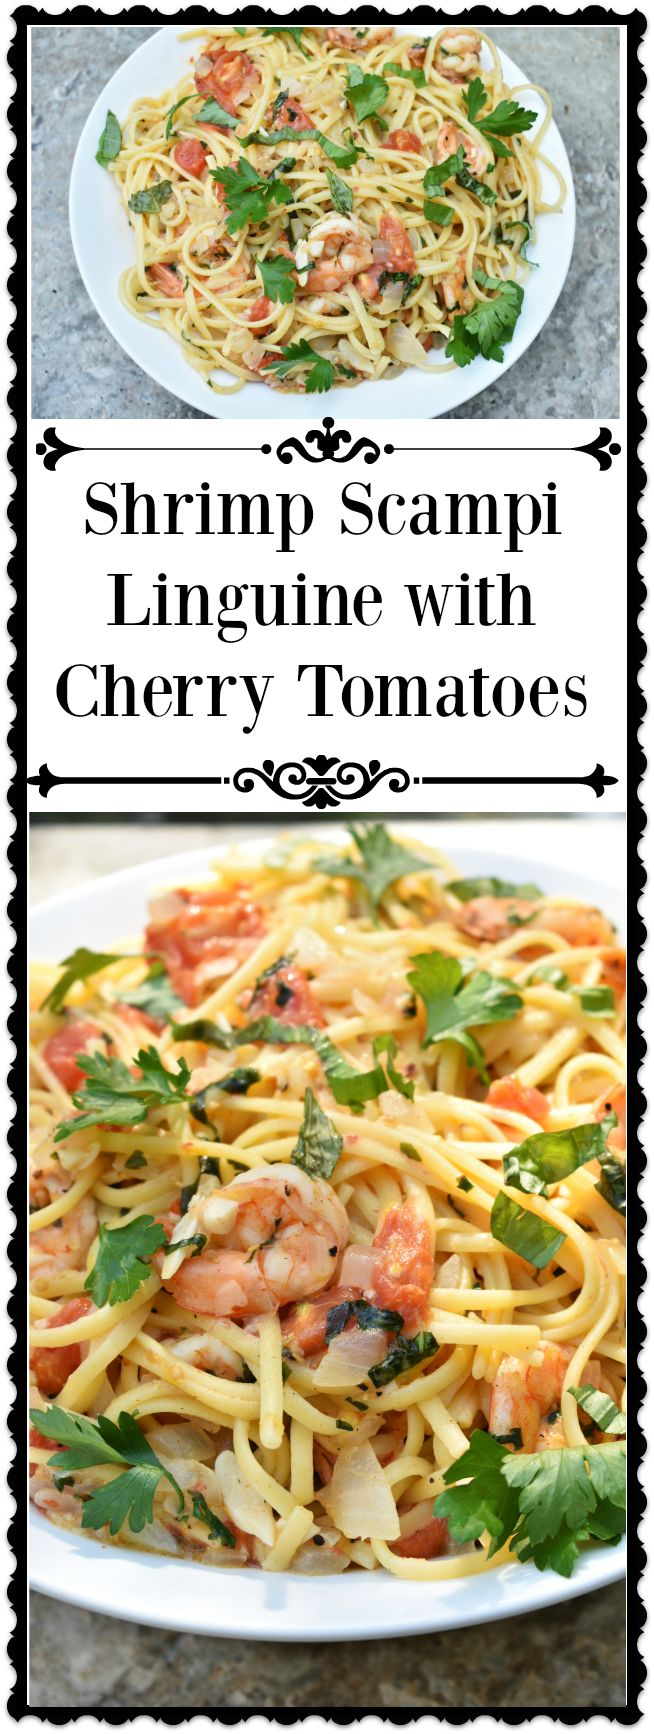 Shrimp Scampi Linguine with Cherry Tomatoes is an easy, delicious recipe for any occasion. The roasted cherry tomatoes add an extra pop of flavor to the classic lemon and garlic sauce. The sweet, briny shrimp and is the perfect counterbalance for the garlicky, acidic sauce. This is a quick, easy recipe that will quickly become a mainstay on your dinner table.